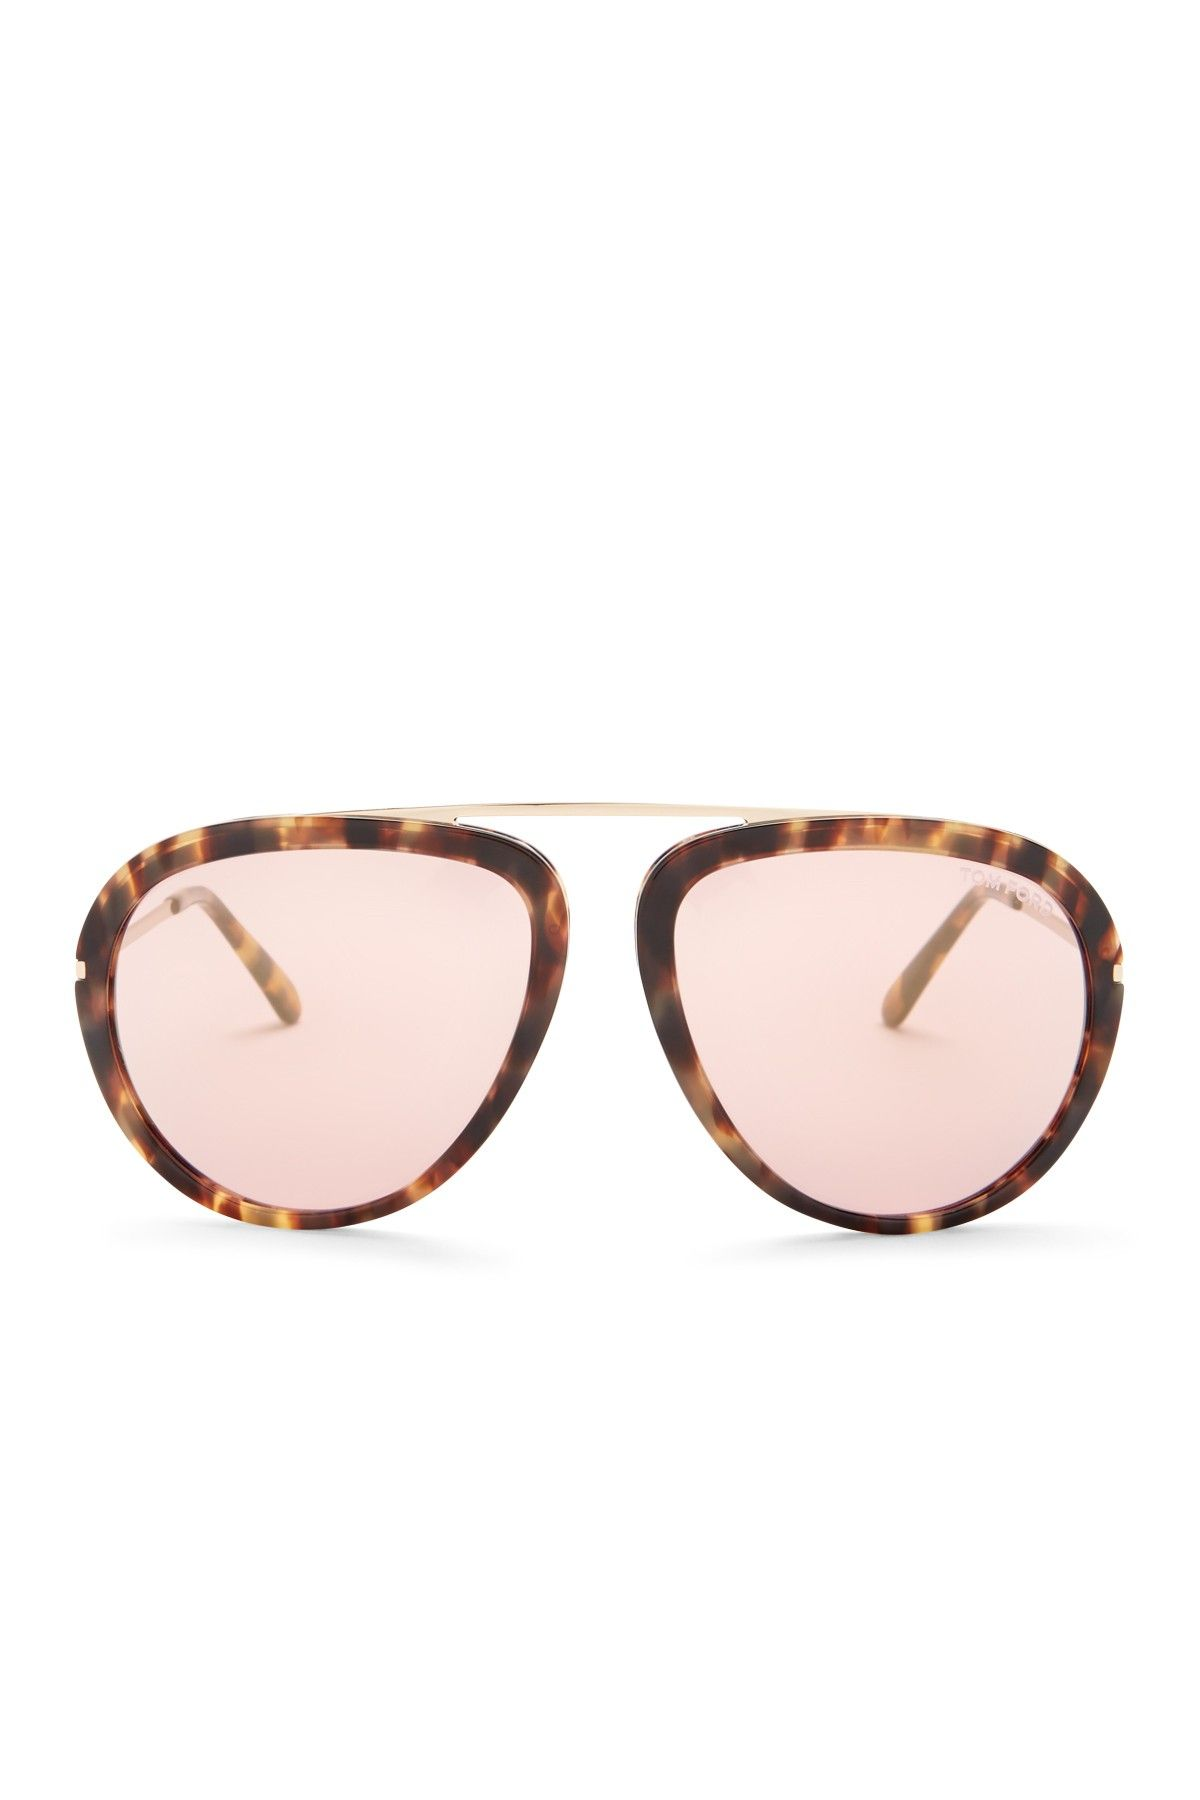 Tom Ford | Womenu0027s Stacy Bridgeless Aviator Sunglasses | Nordstrom Rack